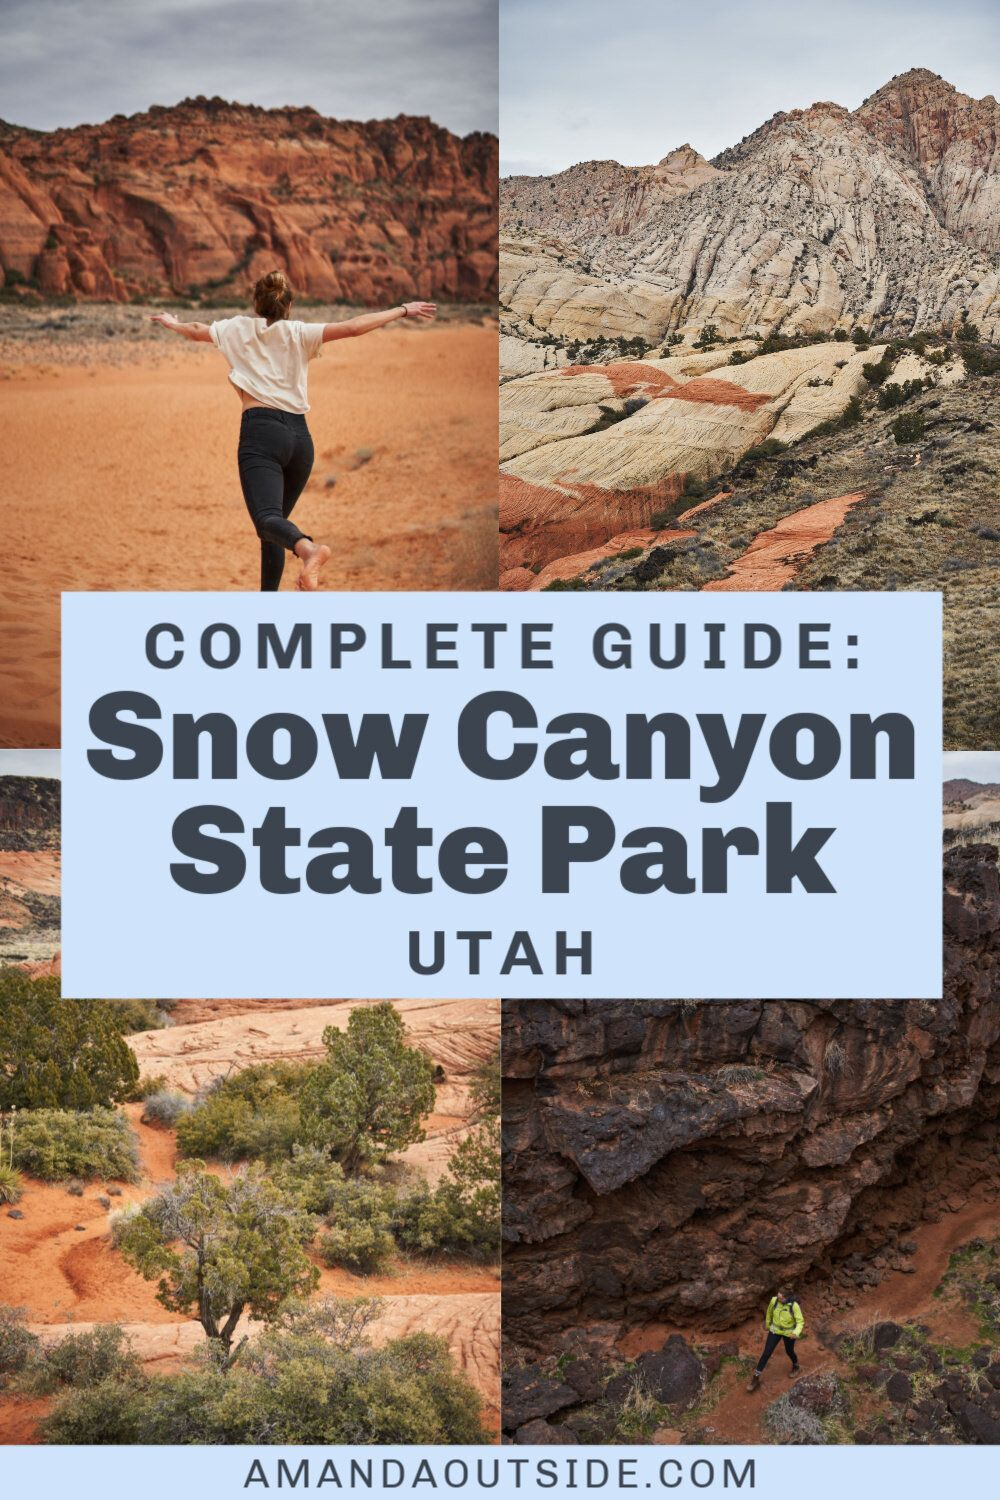 Snow Canyon State Park in Utah (The Complete Guide) — Amanda Outside -   #amanda #canyon #complete #guide #OutdoorTravelAdventure #outside #state